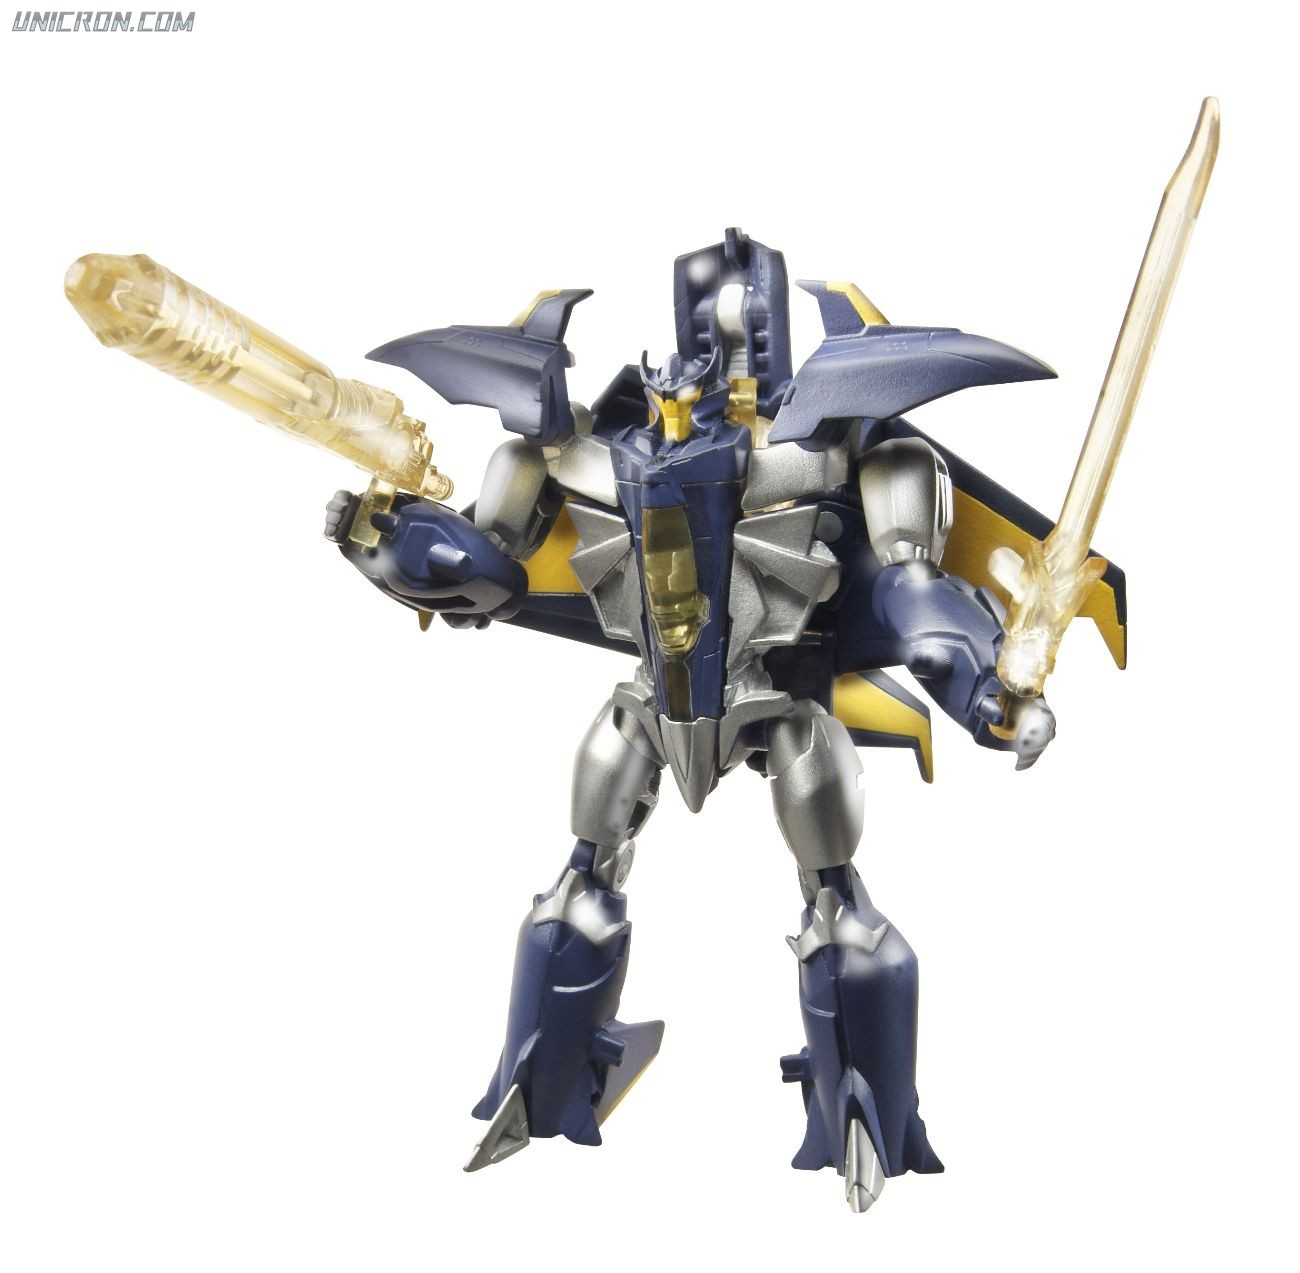 Transformers Cyberverse Dreadwing (Cyberverse Commander) toy